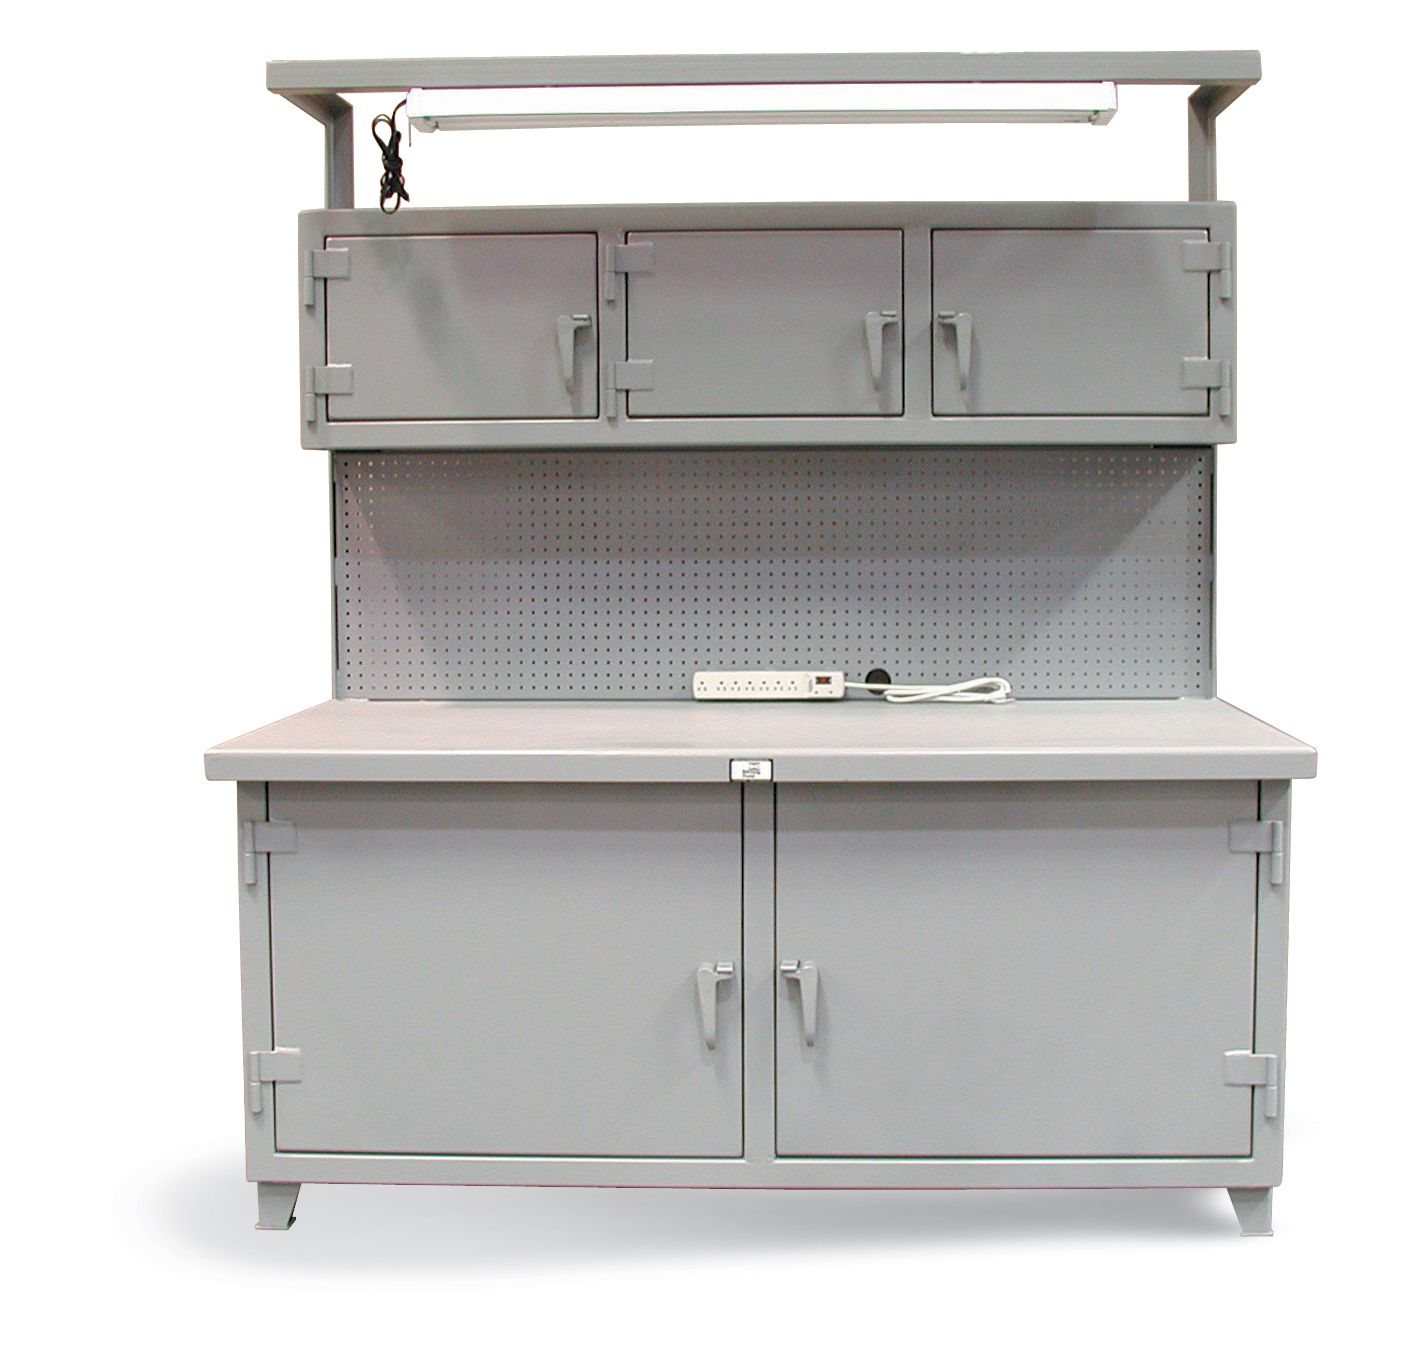 Cabinet Workstation With Upper Compartments With Pegboard   Cabinet  Workstation With 3 Upper Compartments And 2lower Compartments And Light,  And Pegboard ...